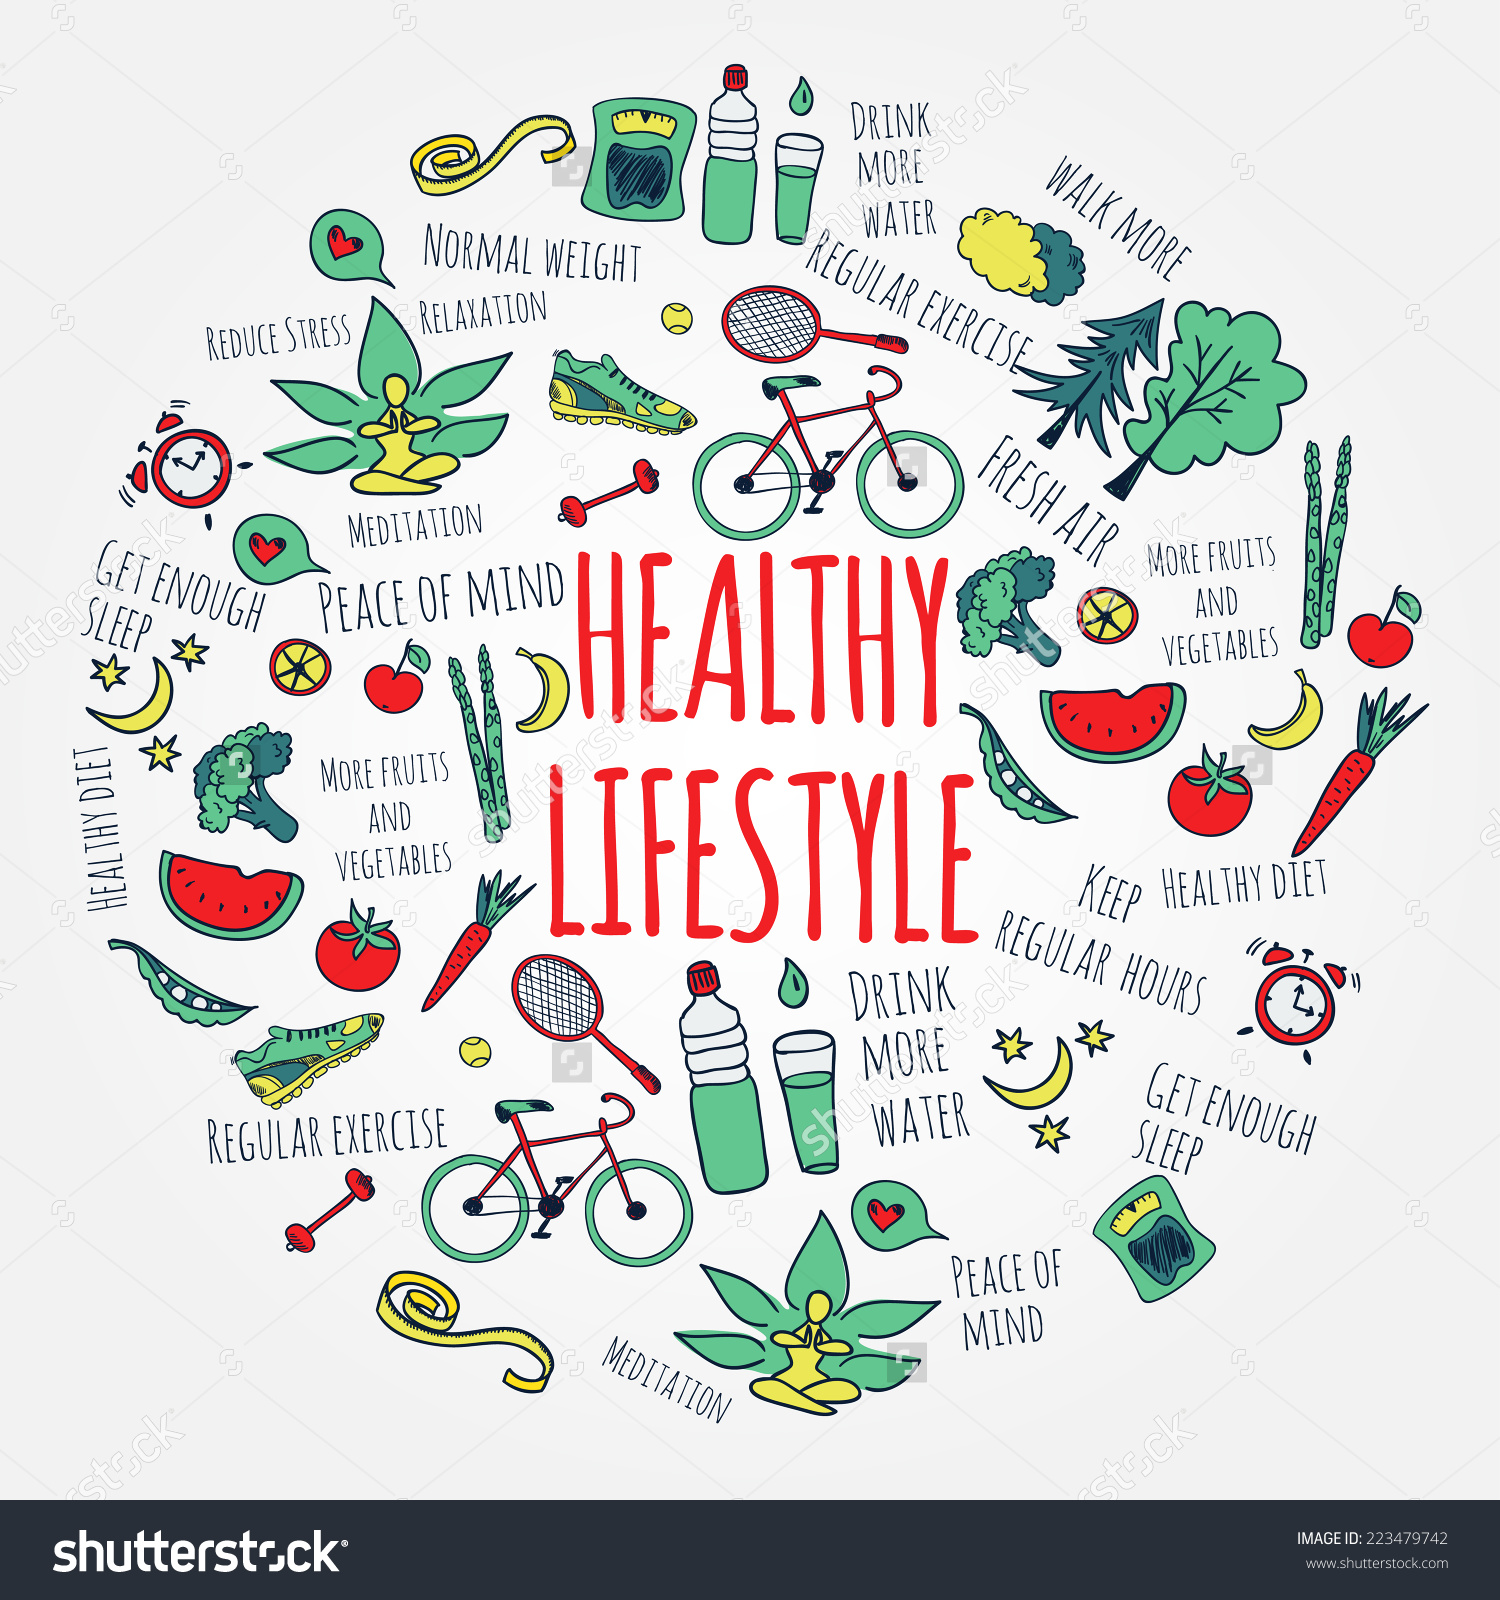 Healthy lifestyle clipart free.